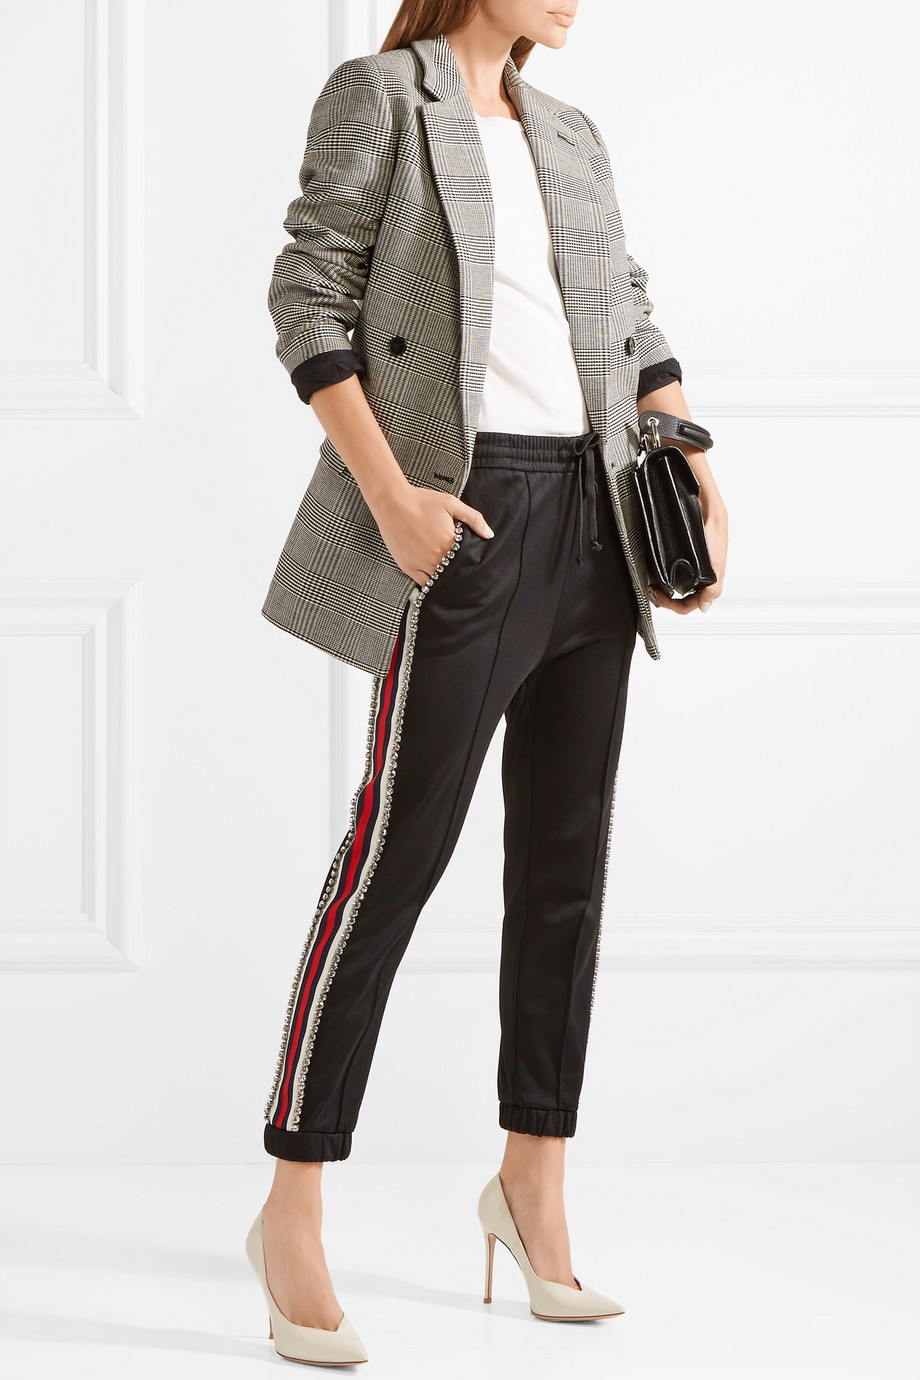 Track pants stella mccartney